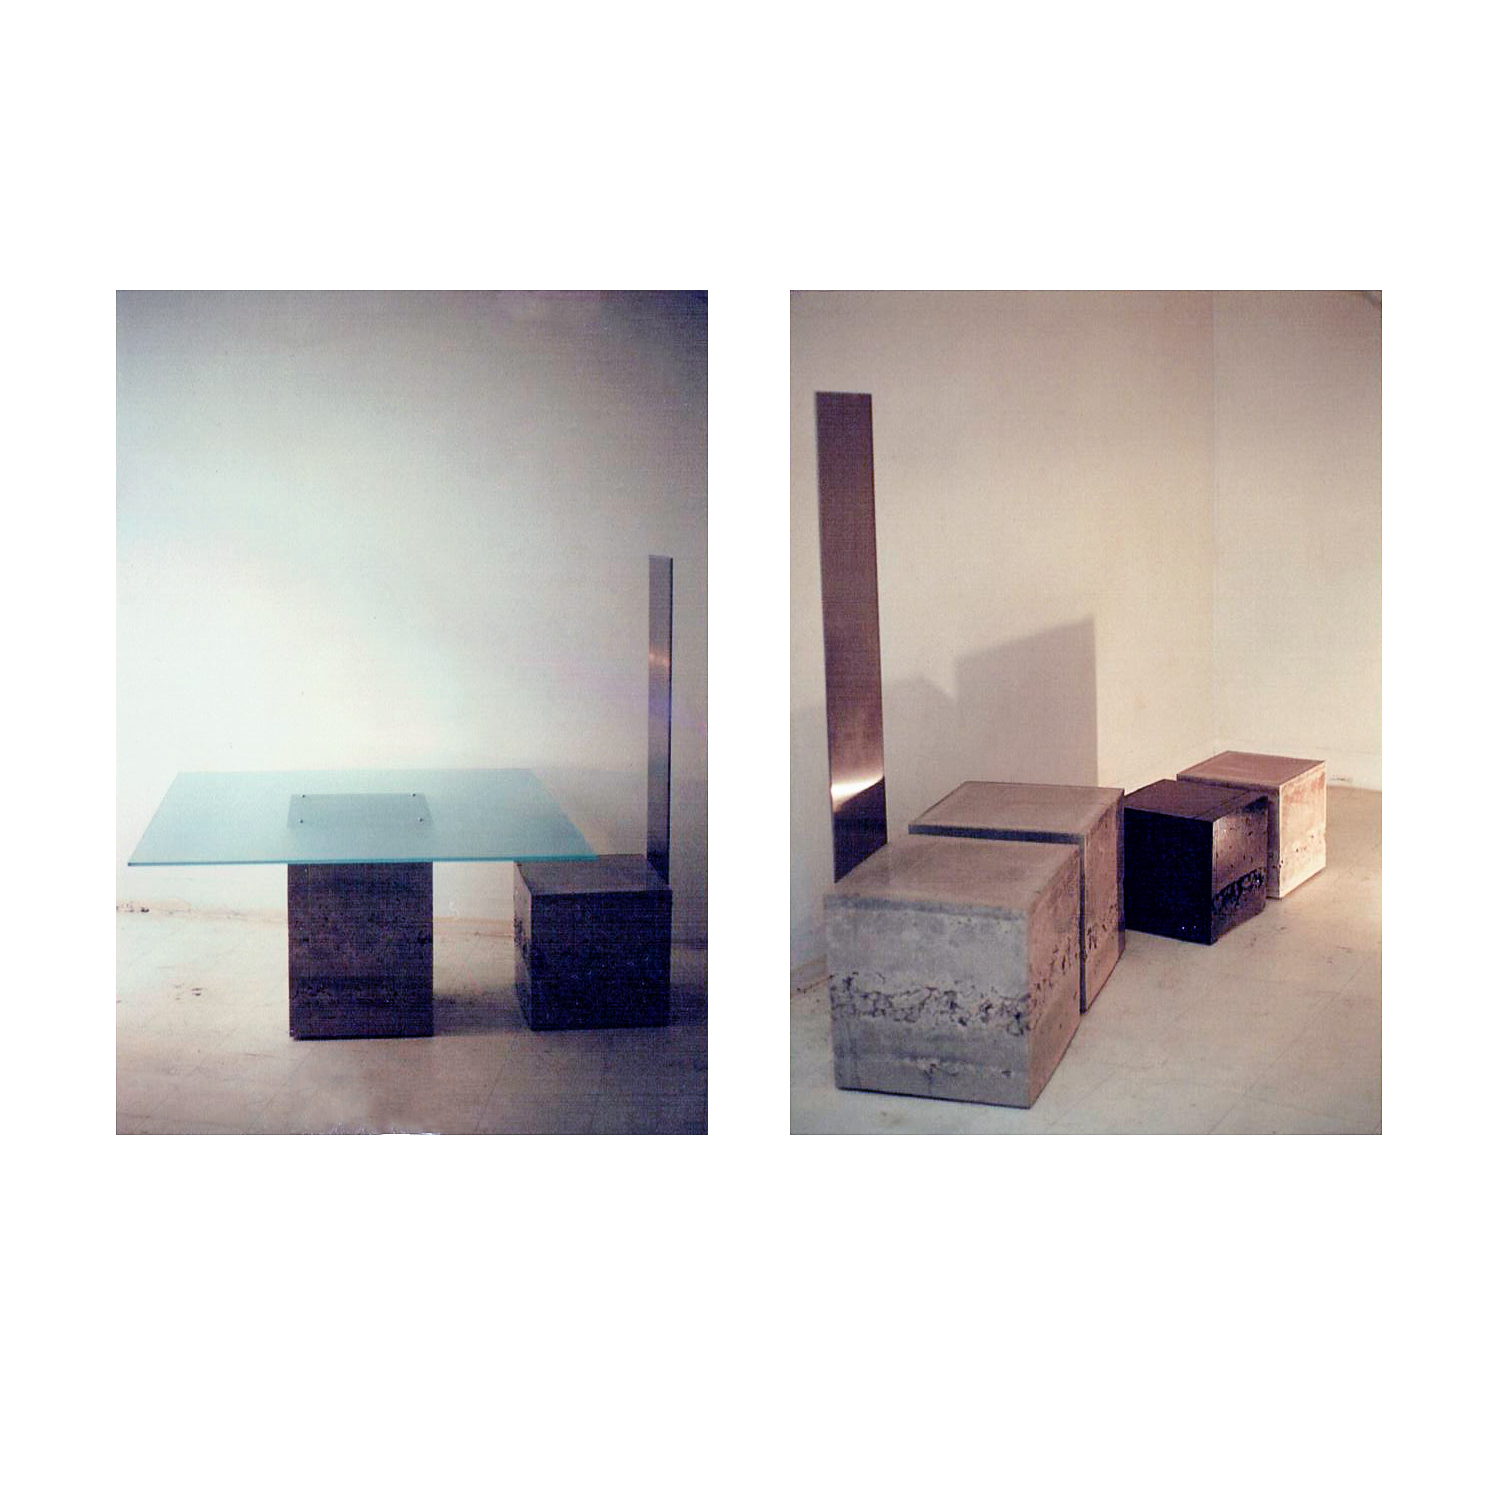 Polished concrete furniture with steel and glass